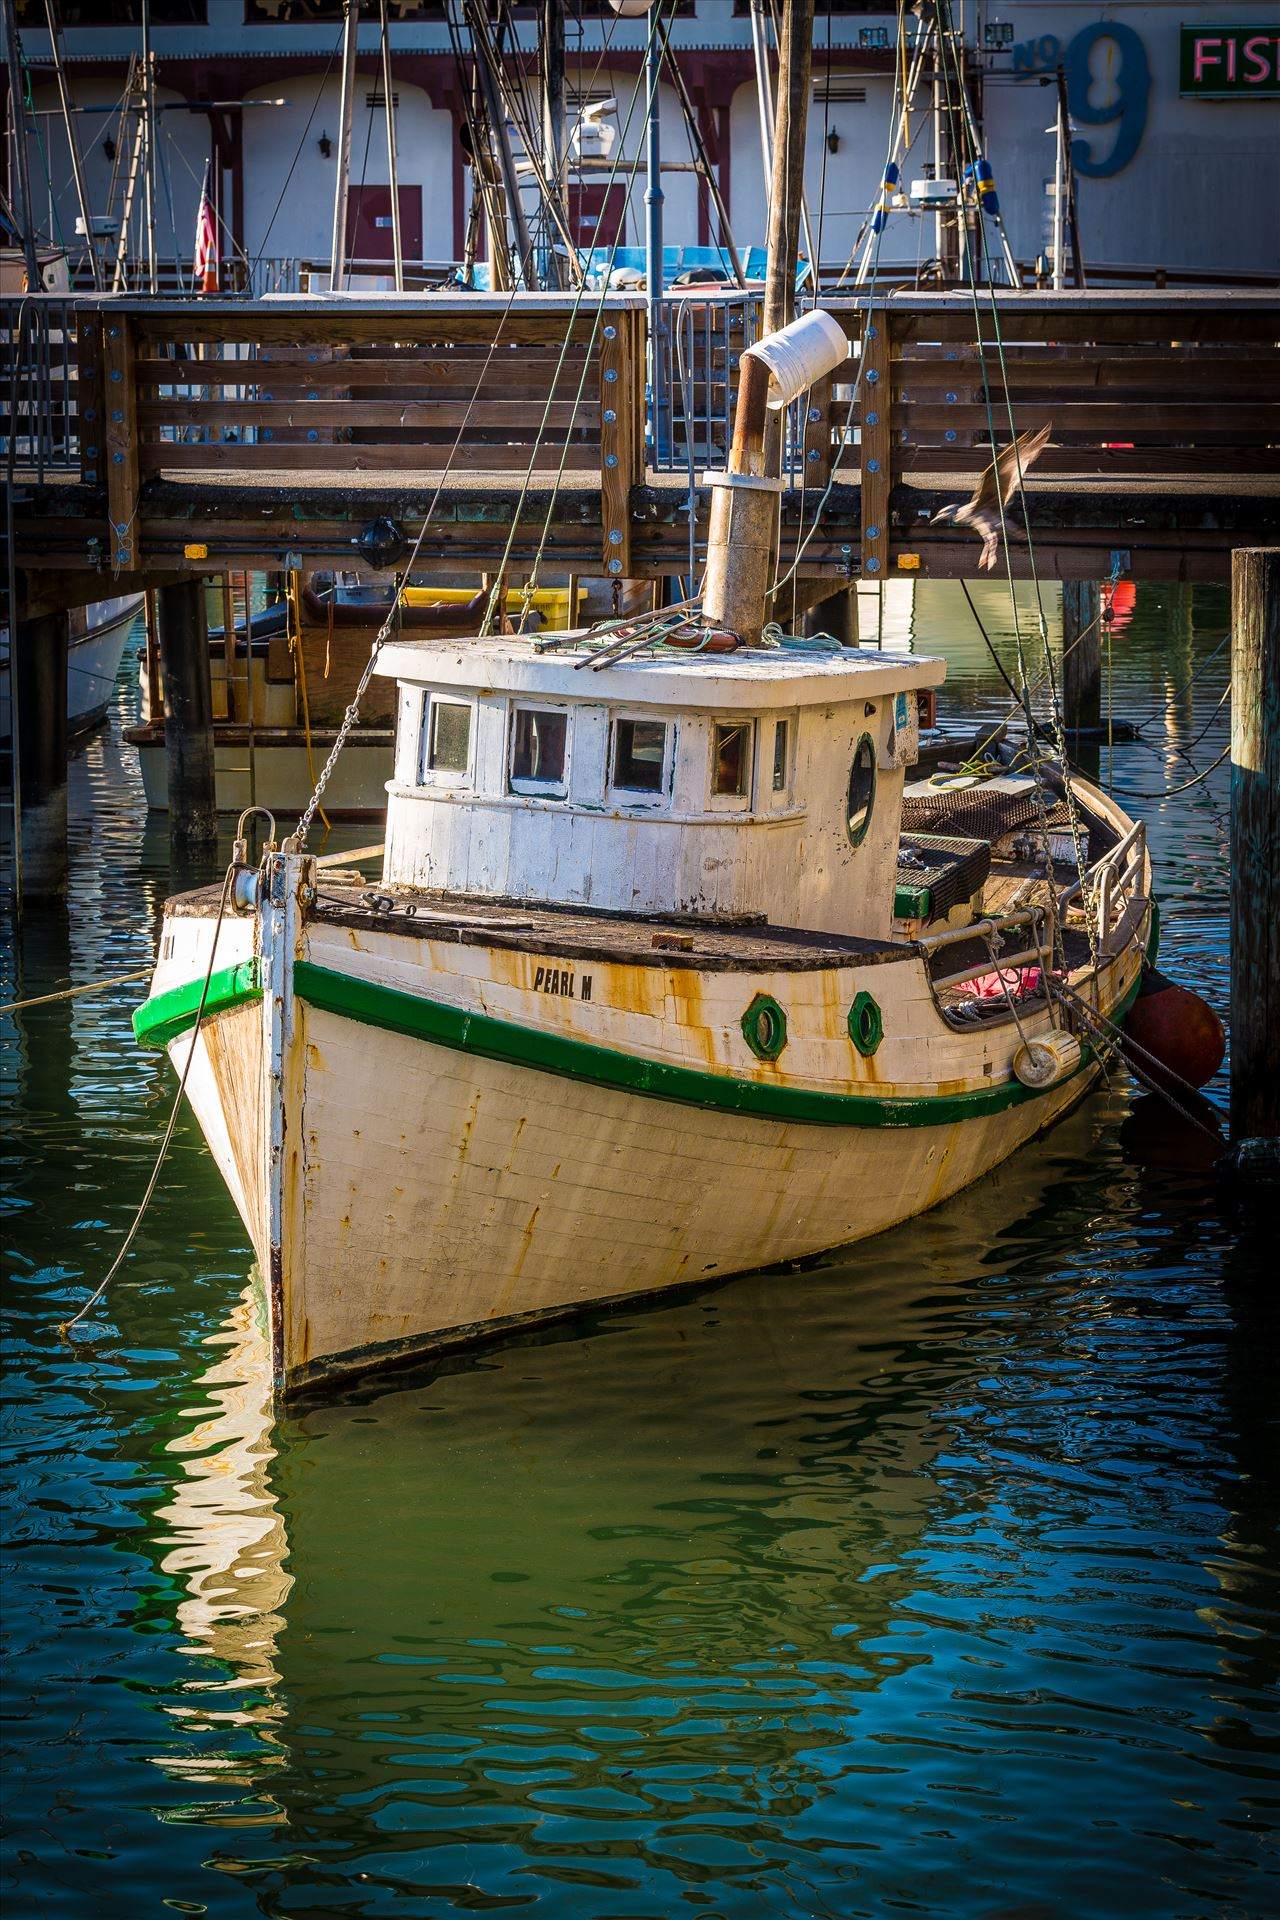 Boat at San Francisco's Pier 39 -  by D Scott Smith